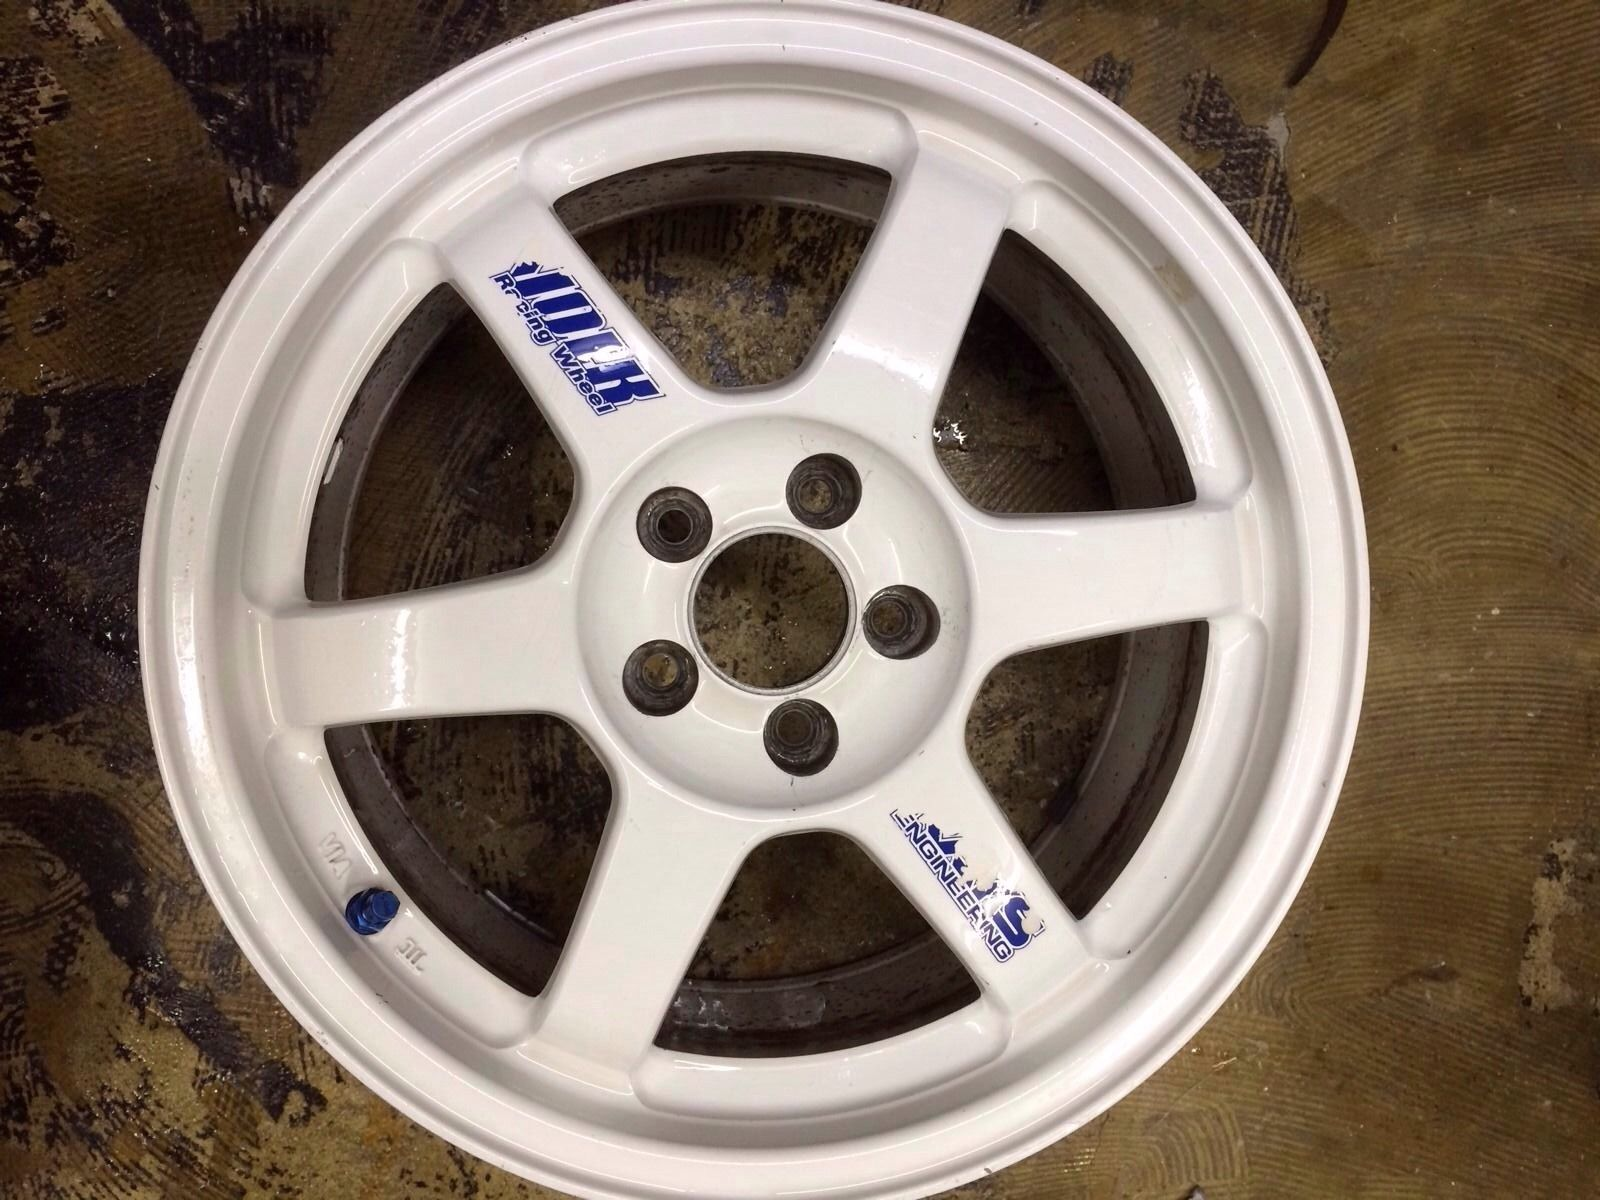 Volk racing rims pre owned rays forged jdm white powder coated wheels